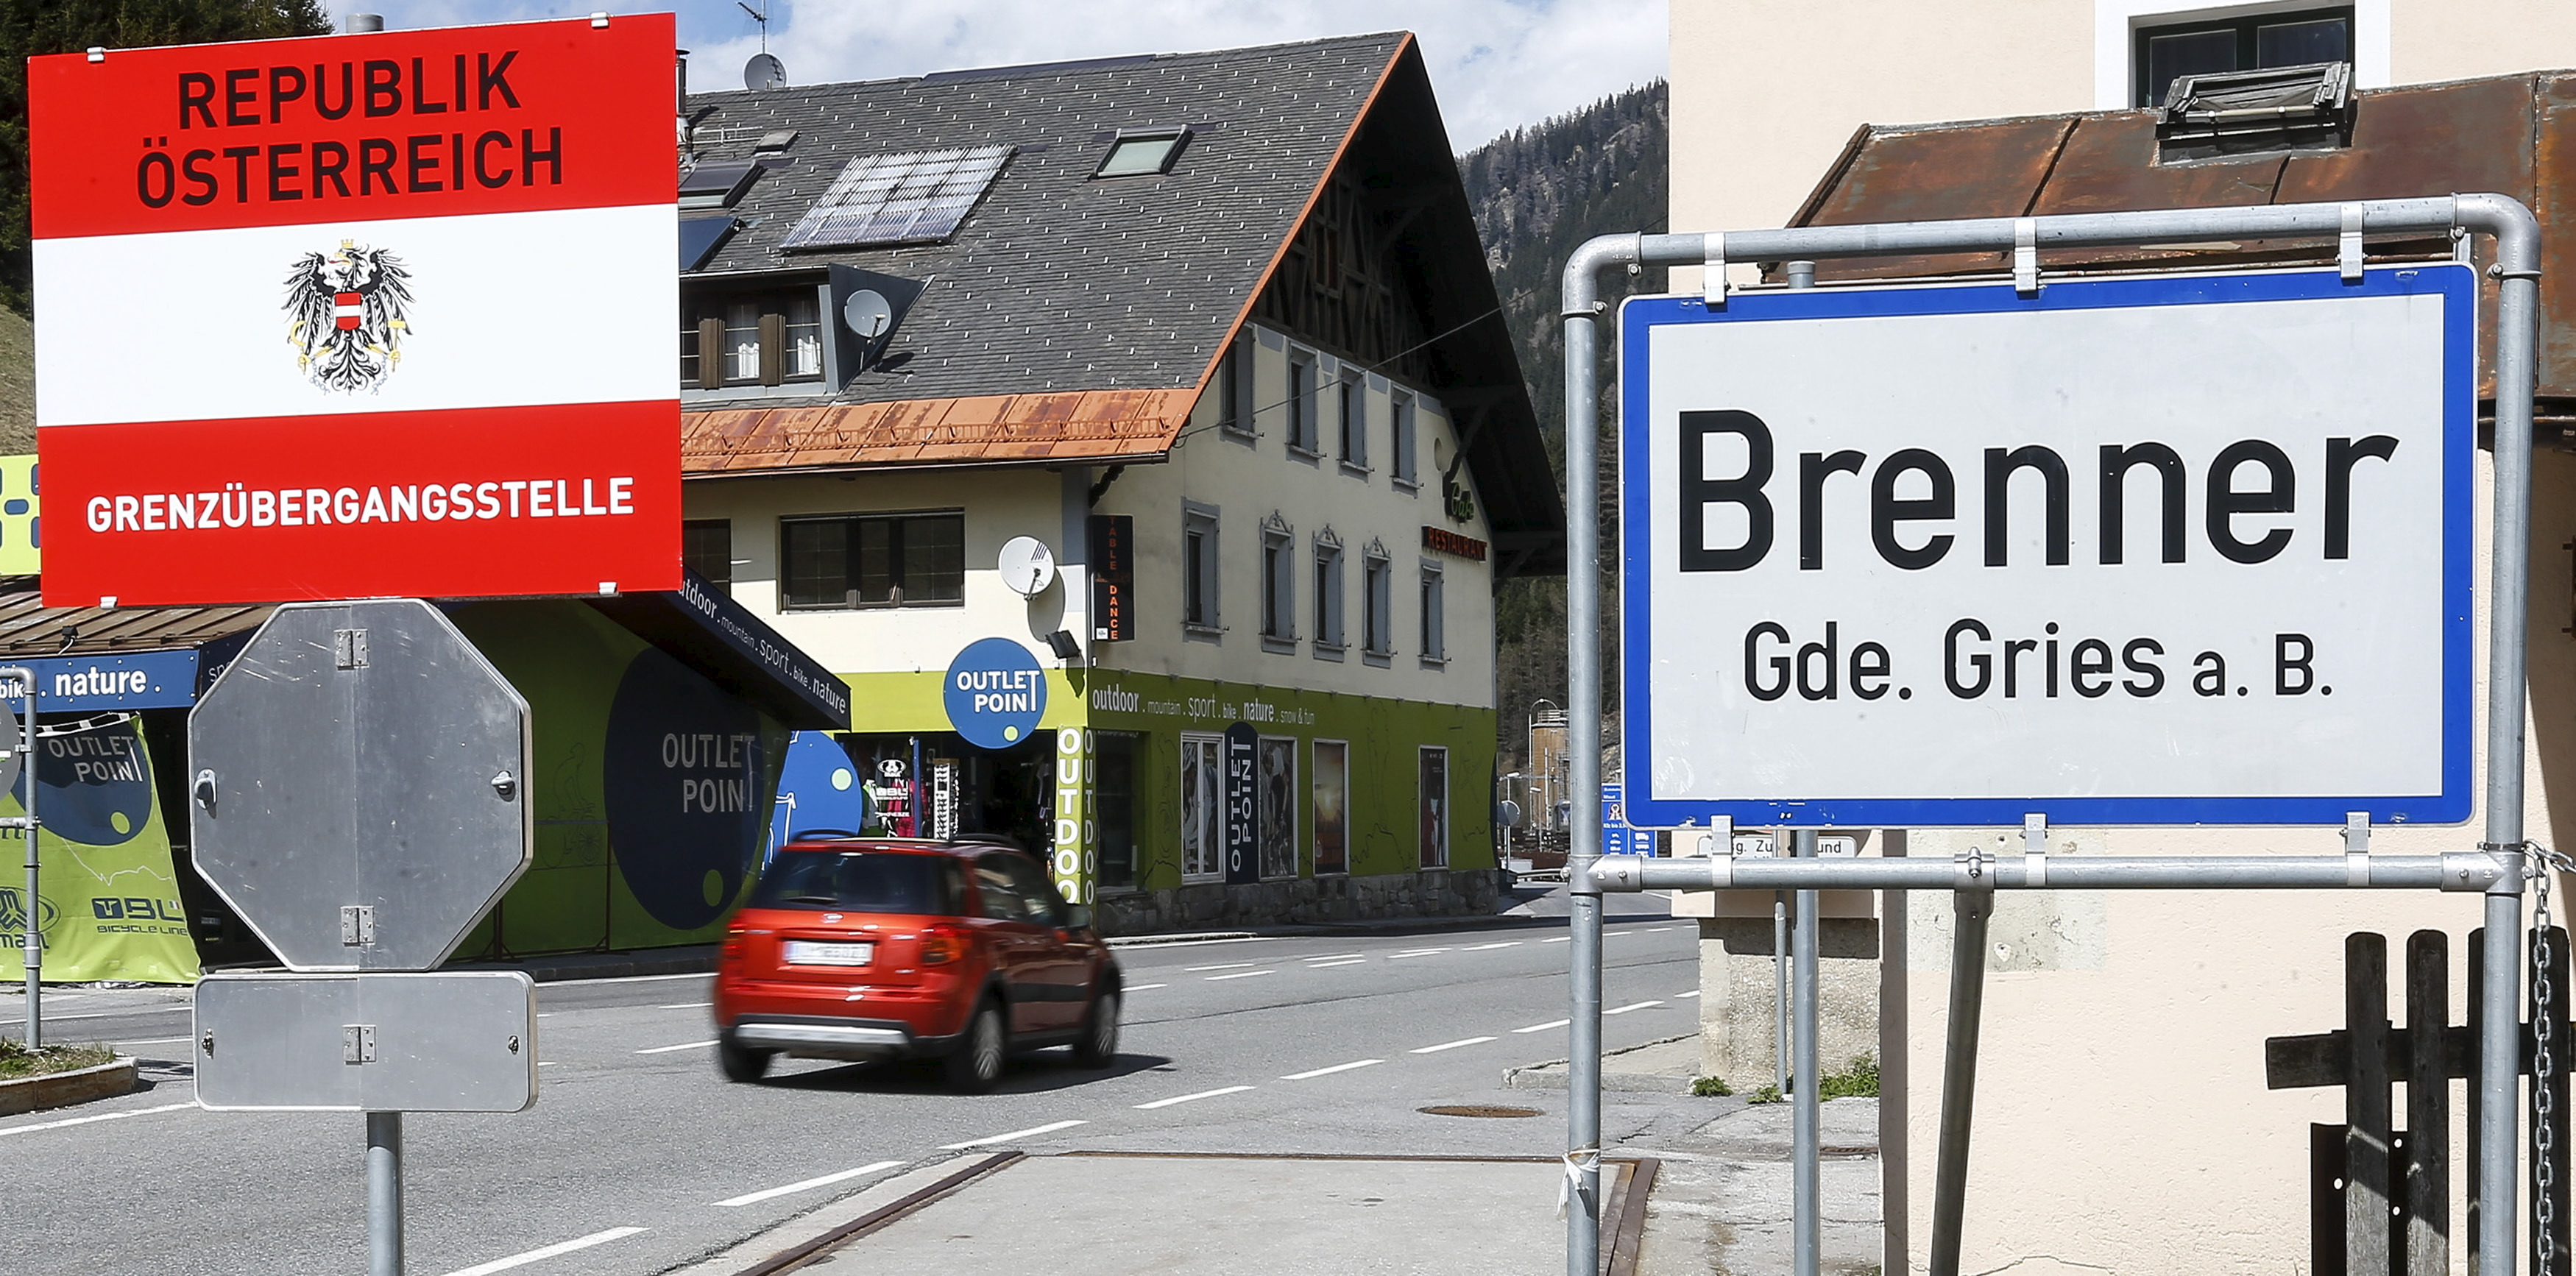 """A sign reading """"Republic of Austria - border control"""" is seen at Brenner on the Italian-Austrian border"""